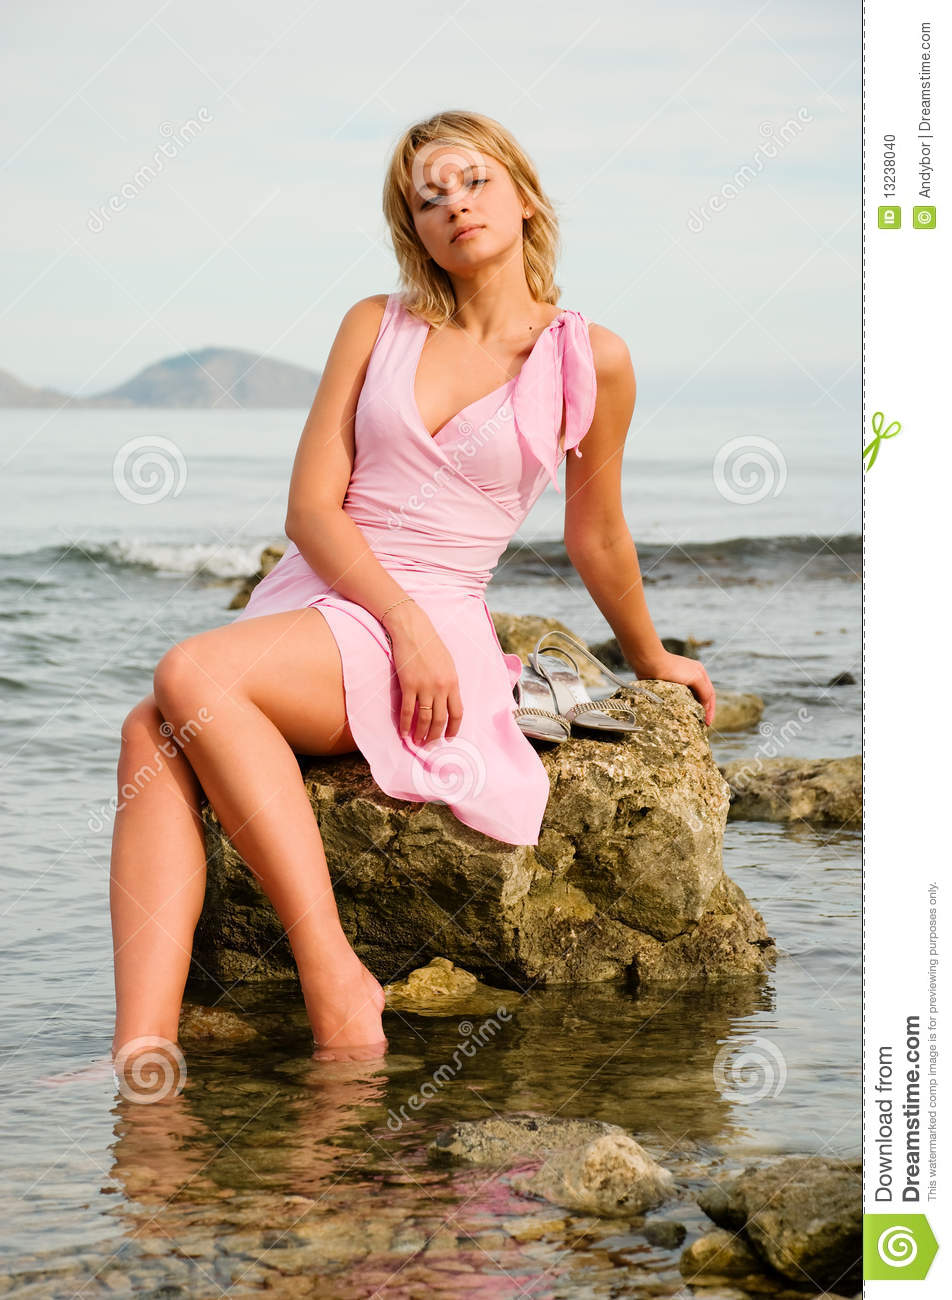 Also, for Girl sitting on rock becoming